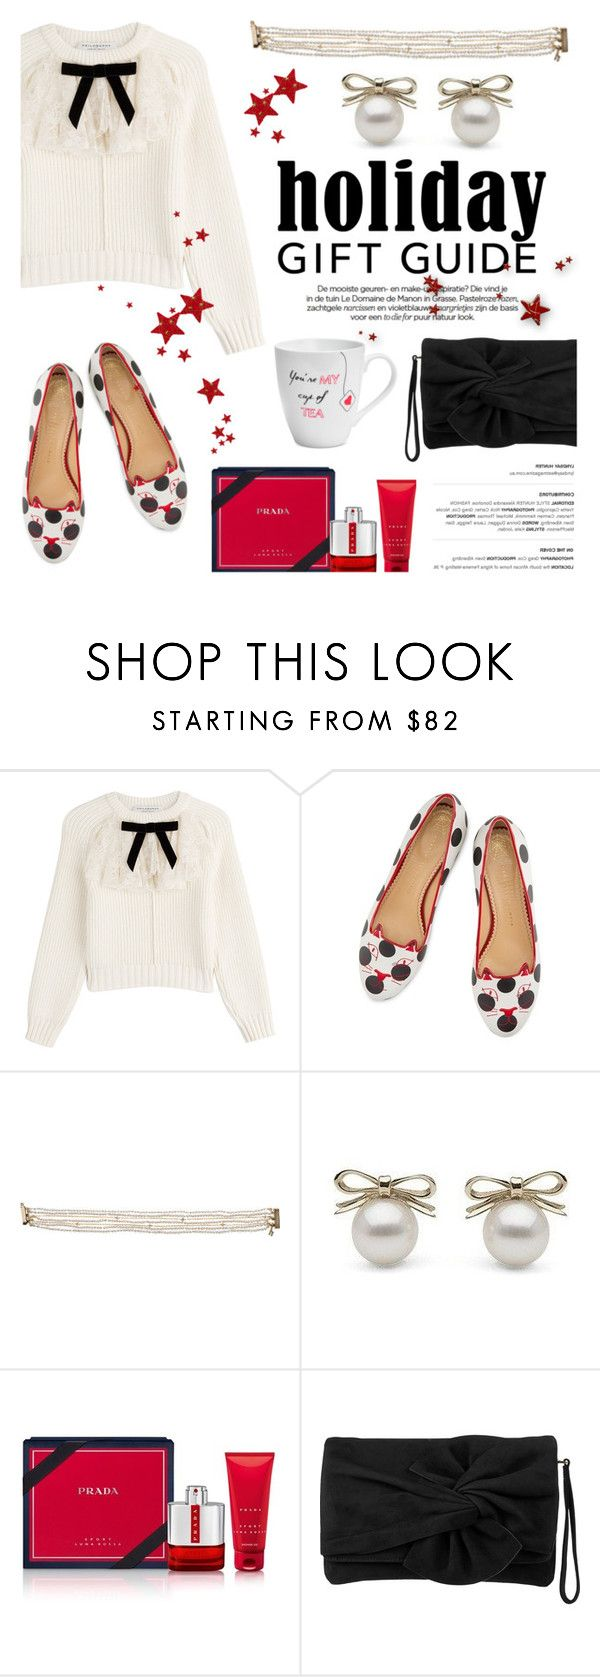 """""""Gift Guide: Besties"""" by littlehjewelry ❤ liked on Polyvore featuring Philosophy di Lorenzo Serafini, Charlotte Olympia, Prada, Karen Millen and Pfaltzgraff"""